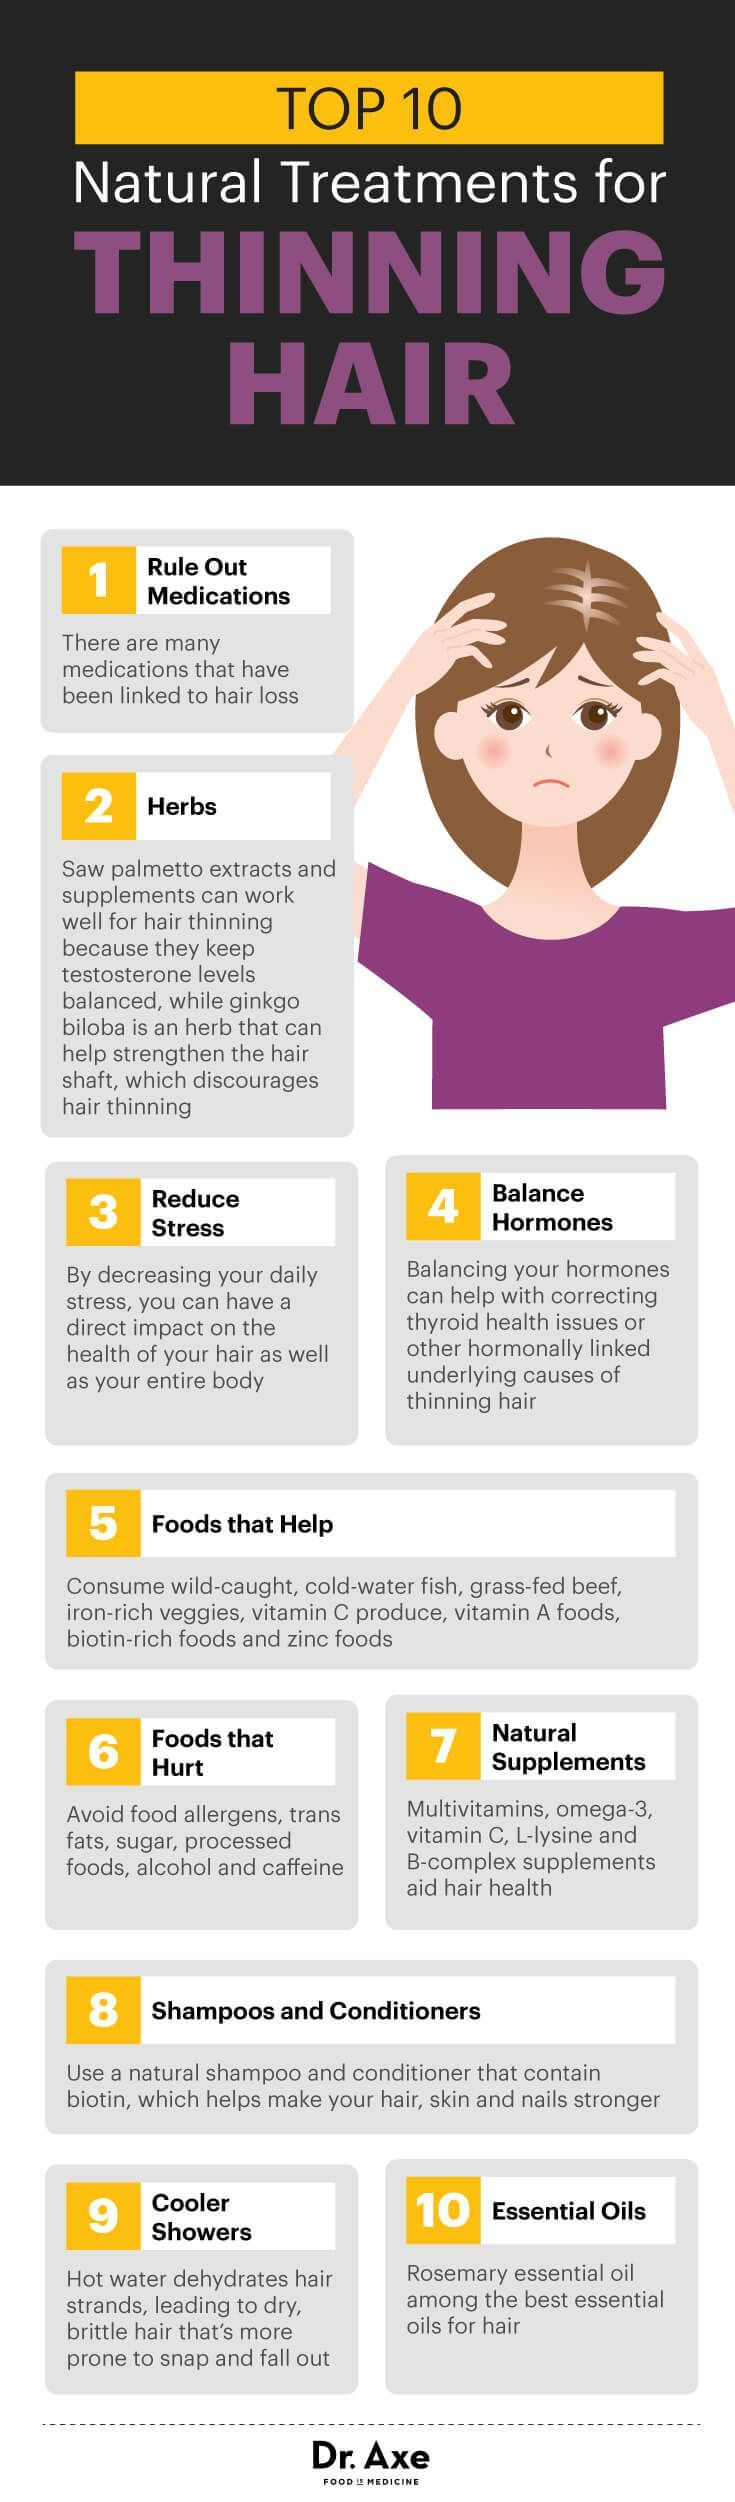 10 natural treatments for thinning hair - Dr. Axe http://www.draxe.com #health #holistic #natural